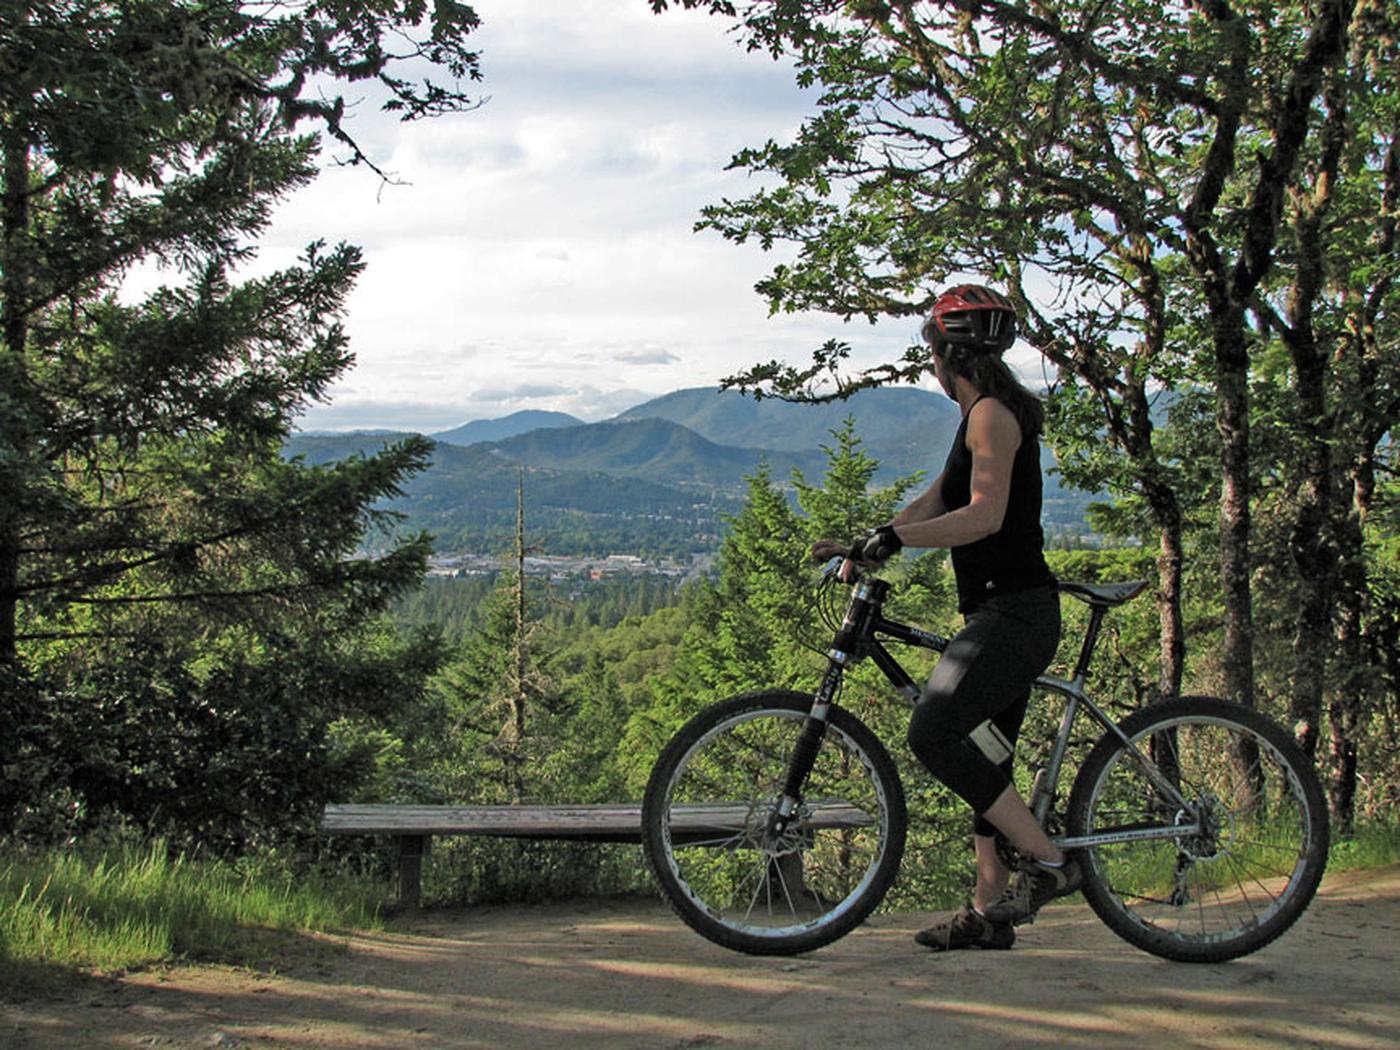 Mountain bike rider on the Cathedral Hills Trail System.